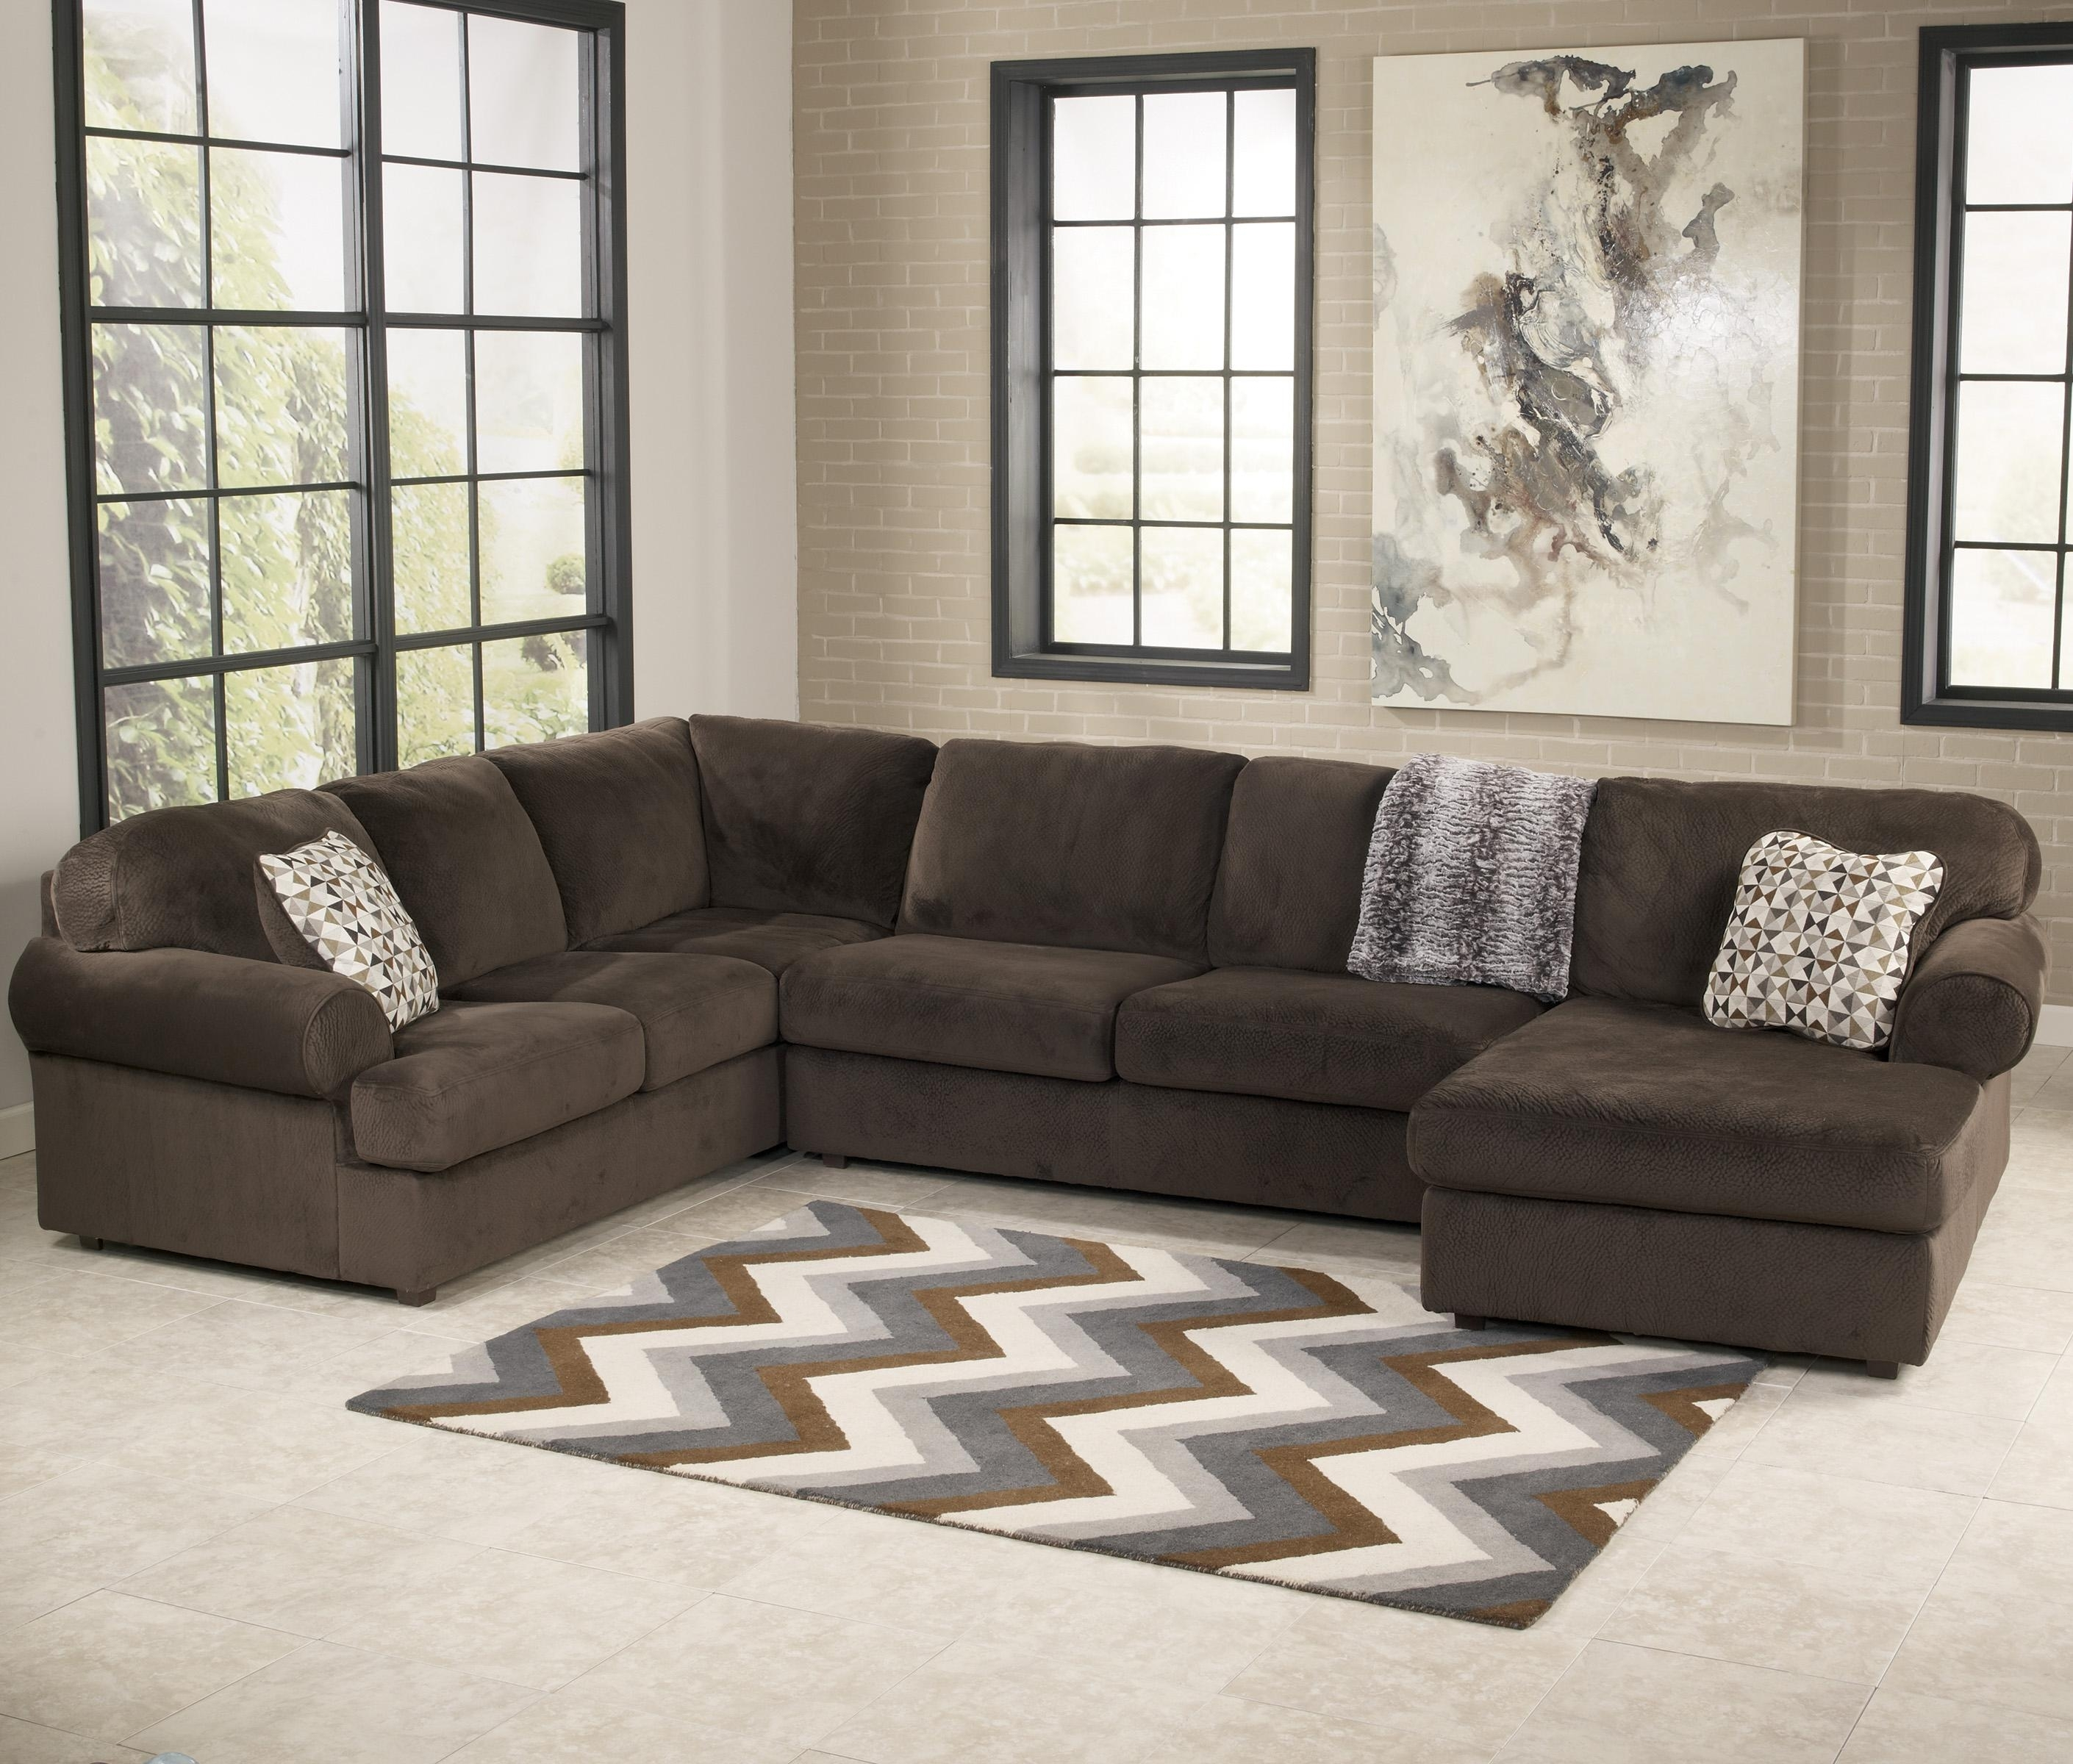 Signature Designashley Jessa Place - Chocolate Casual Sectional intended for Killeen Tx Sectional Sofas (Image 8 of 10)